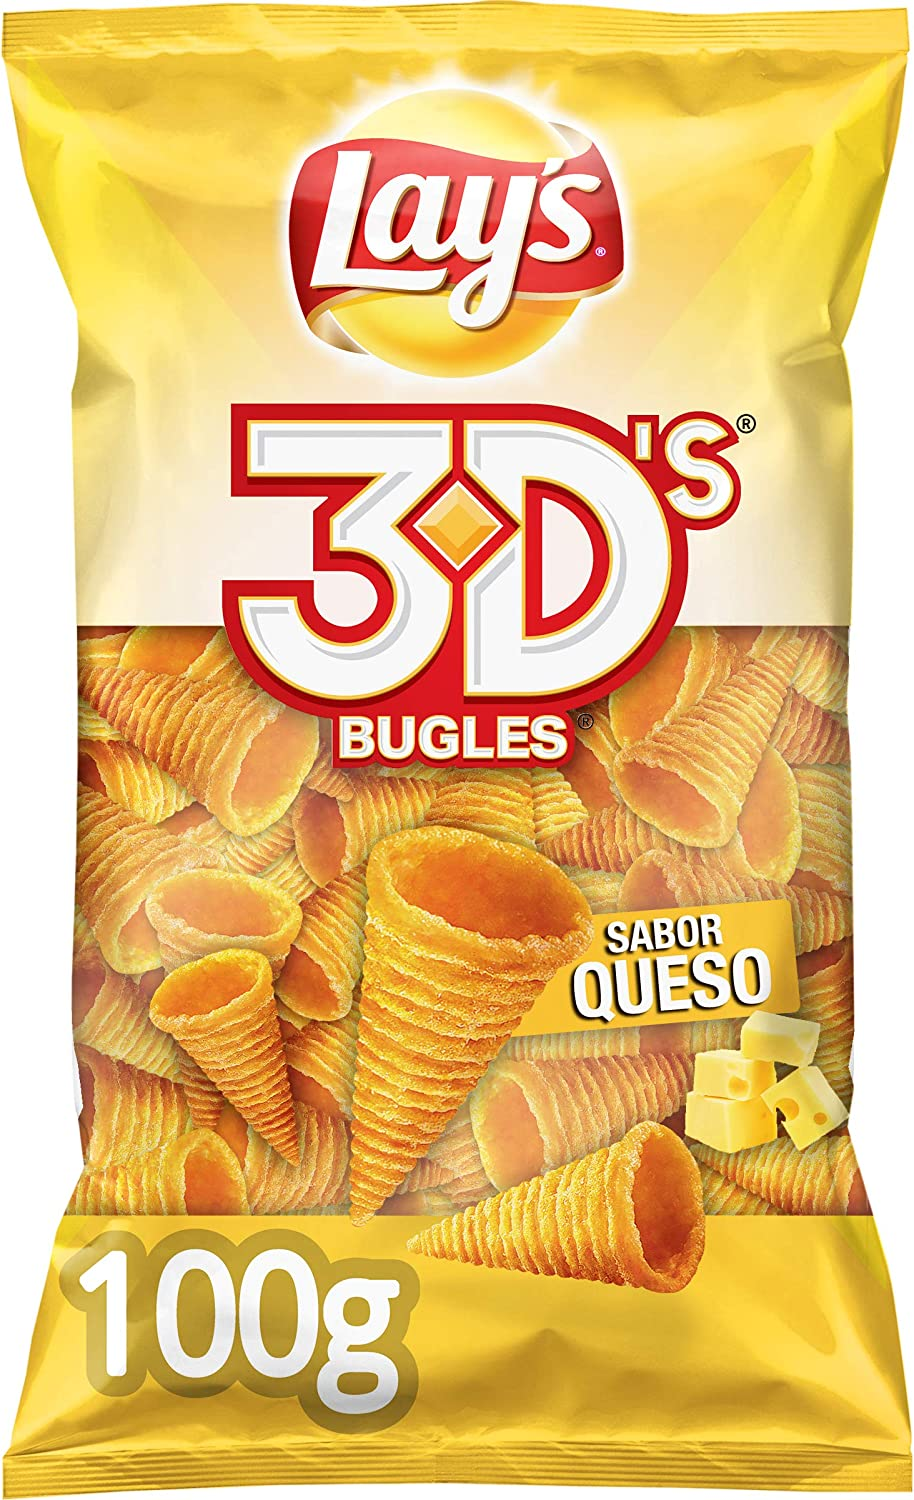 LayS Lay`S Bugles 3DS Queso, 100g